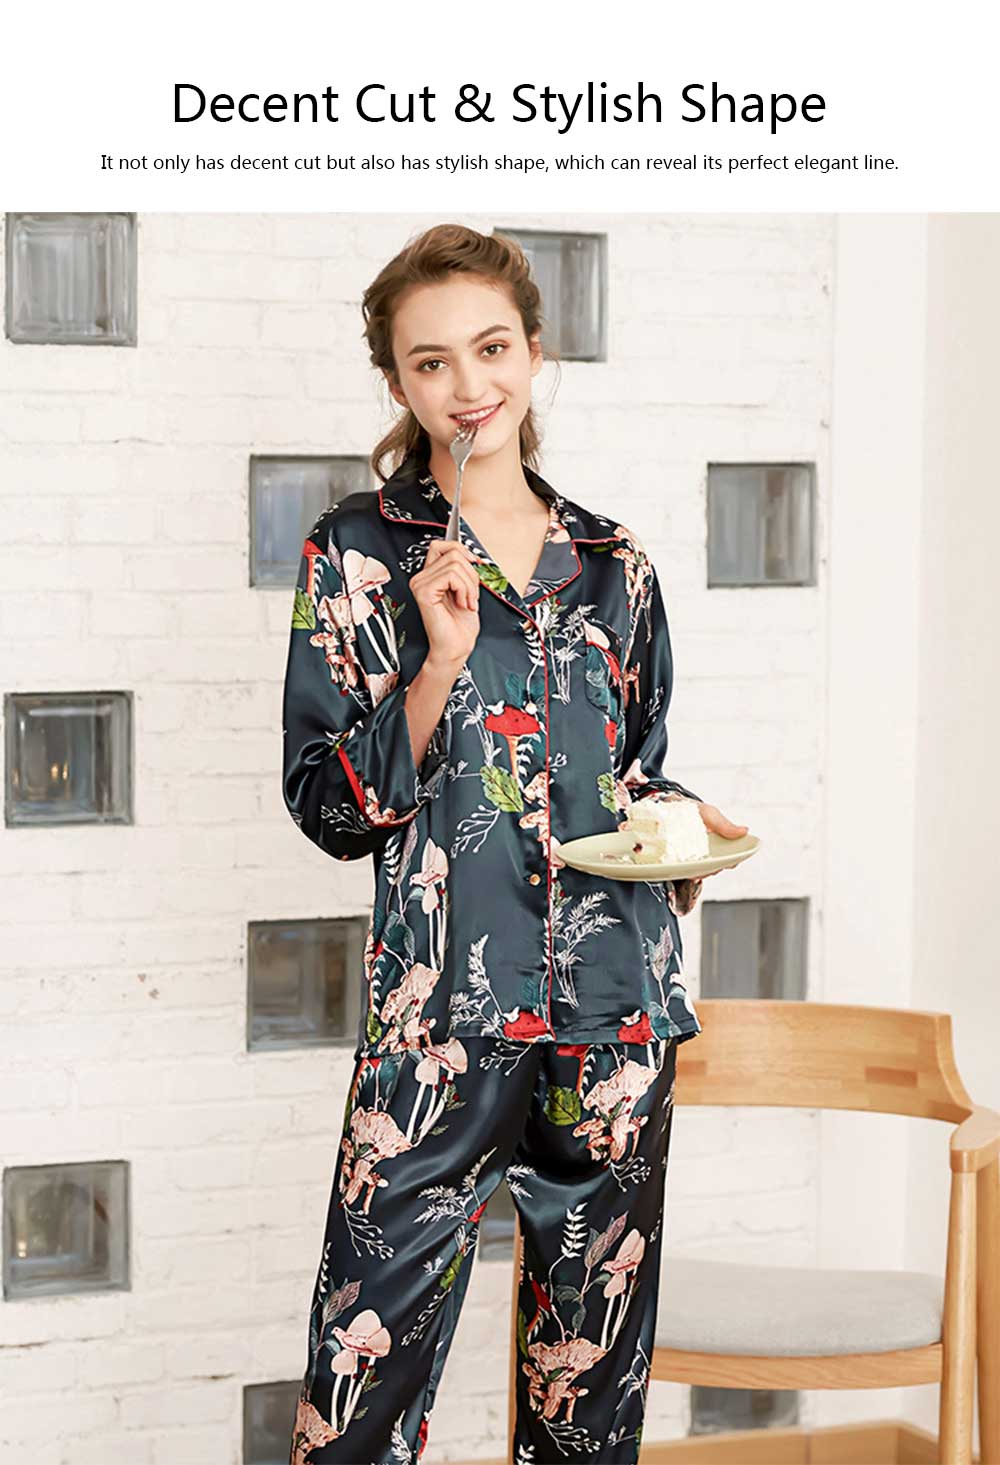 Imitation Silk Fabric Long-sleeved Tracksuit, Botanical Floral Pattern Printed Pajamas, Two-piece Suit 3